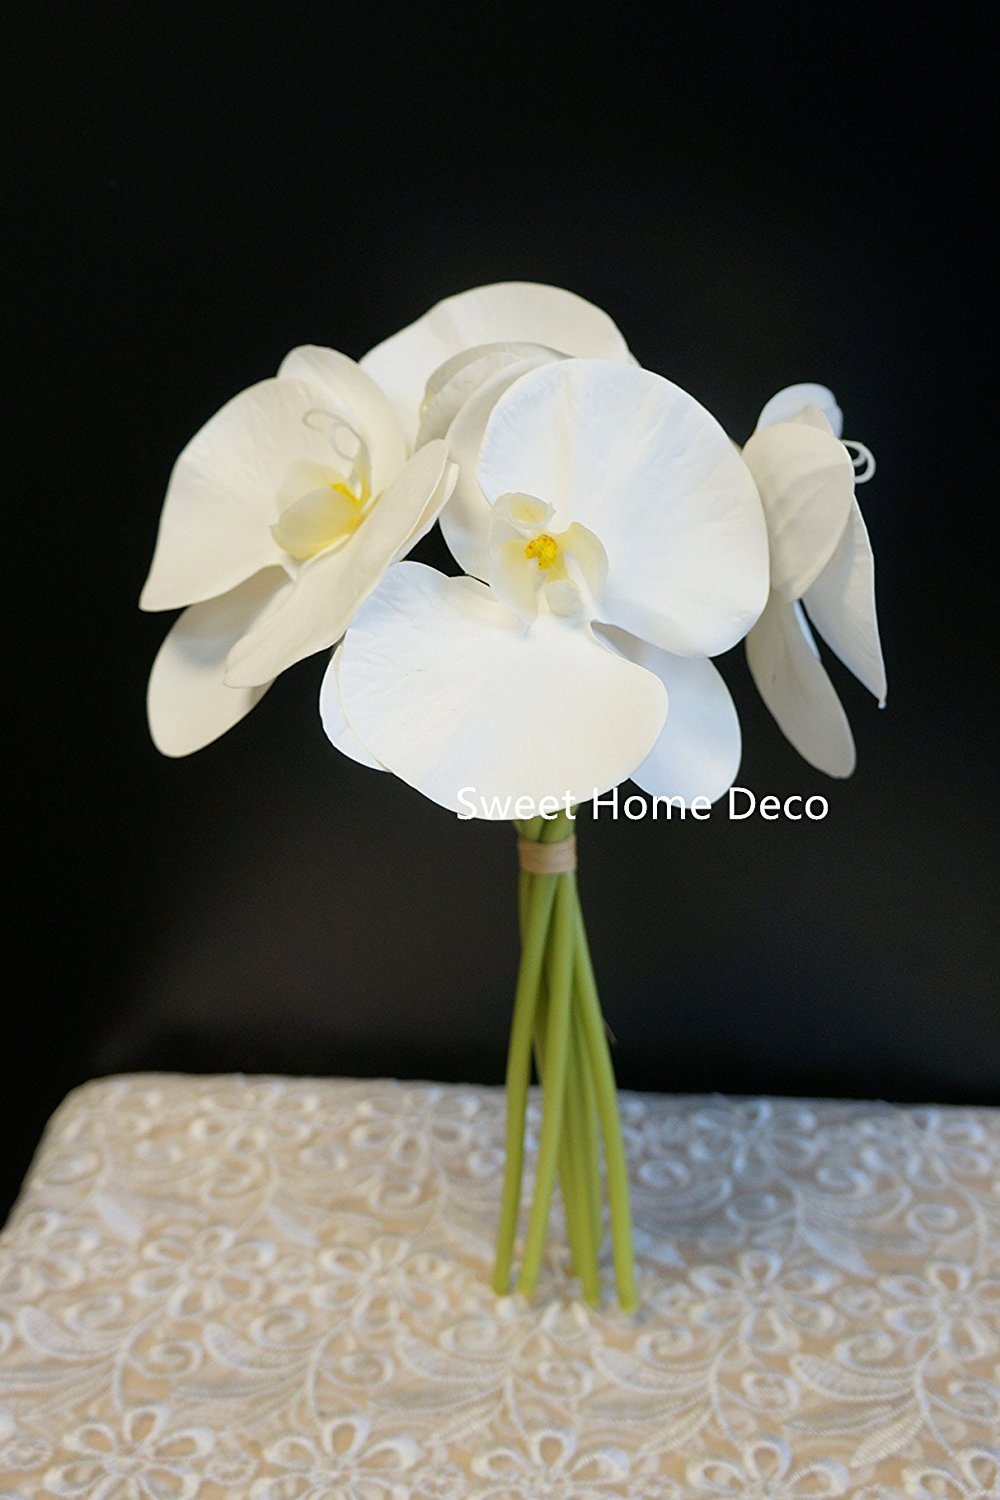 Buy sweet home deco premium real touch phanaenopsis orchid flower sweet home deco premium real touch phanaenopsis orchid flower bouquet 6 big flower heads izmirmasajfo